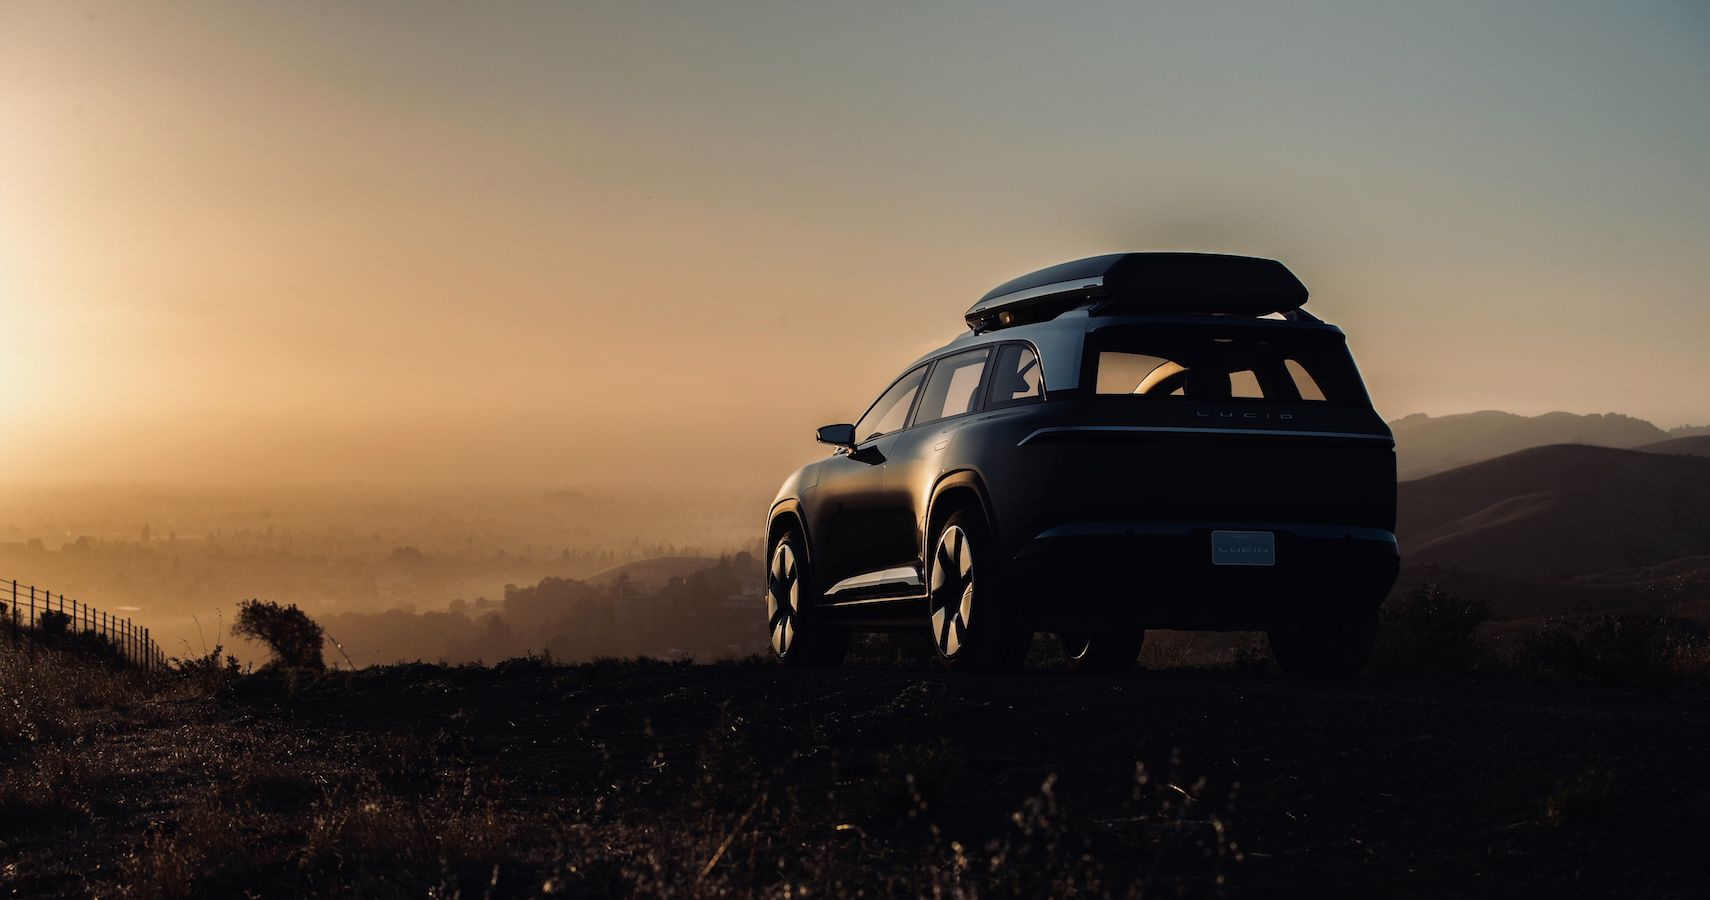 Lucid Teases 1080 Horsepower Luxury SUV Aimed Squarely At Tesla And Rivian